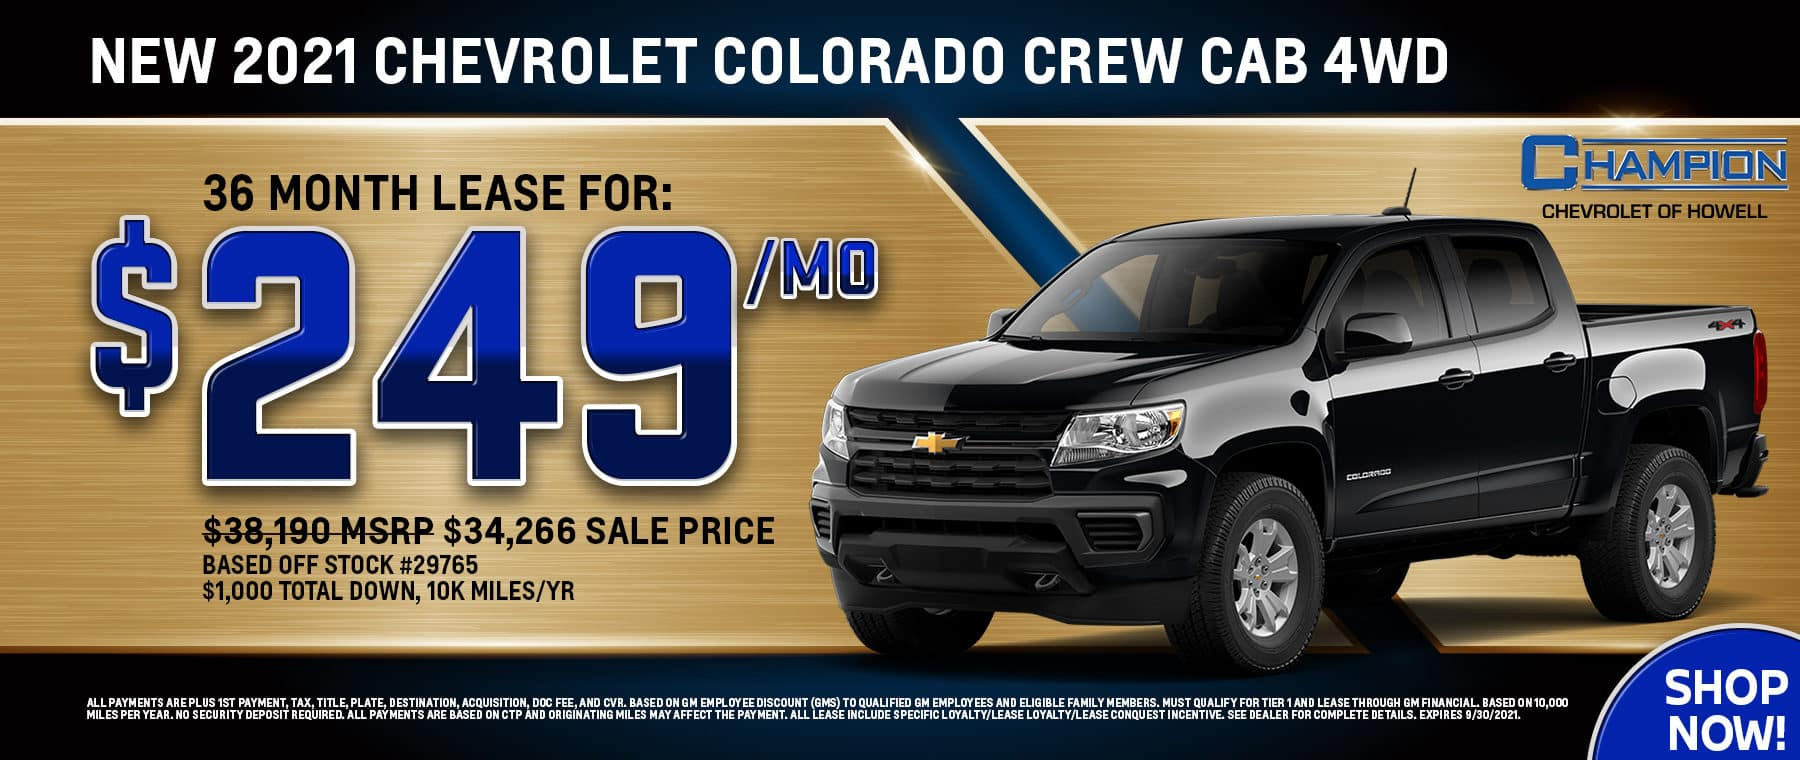 9_21_Champion_Howell_Chevy_1800x760_2021_Colorado_CC_4WD_web_banner